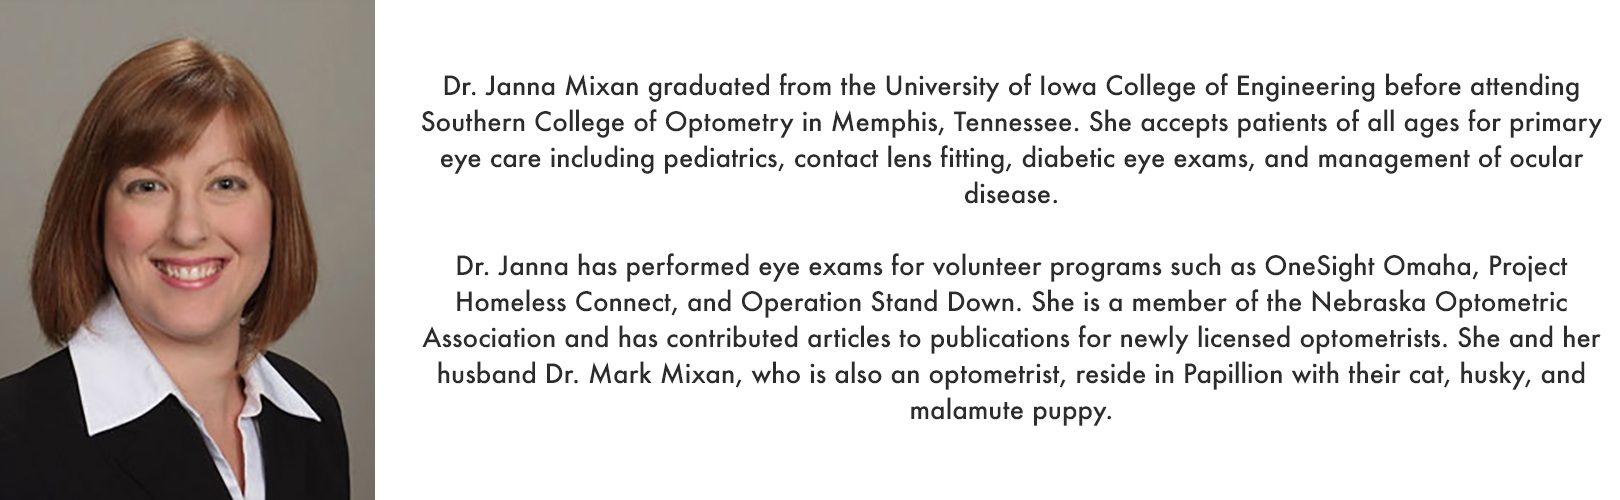 About Dr. Mixan